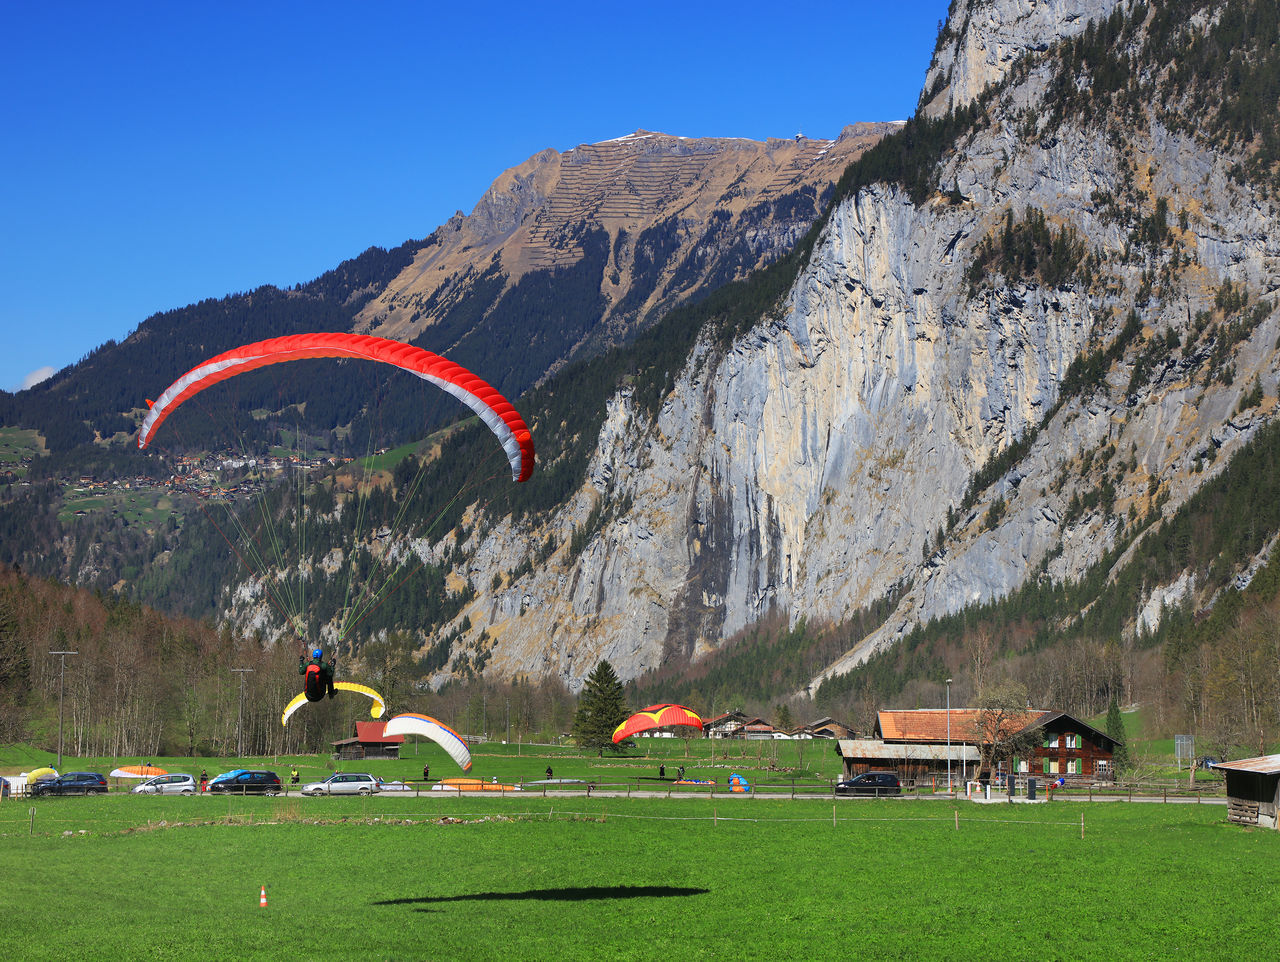 mountain, adventure, leisure activity, day, grass, nature, outdoors, extreme sports, rock - object, scenics, real people, mountain range, landscape, sport, one person, sky, parachute, lifestyles, built structure, tree, beauty in nature, tent, multi colored, architecture, clear sky, full length, paragliding, people